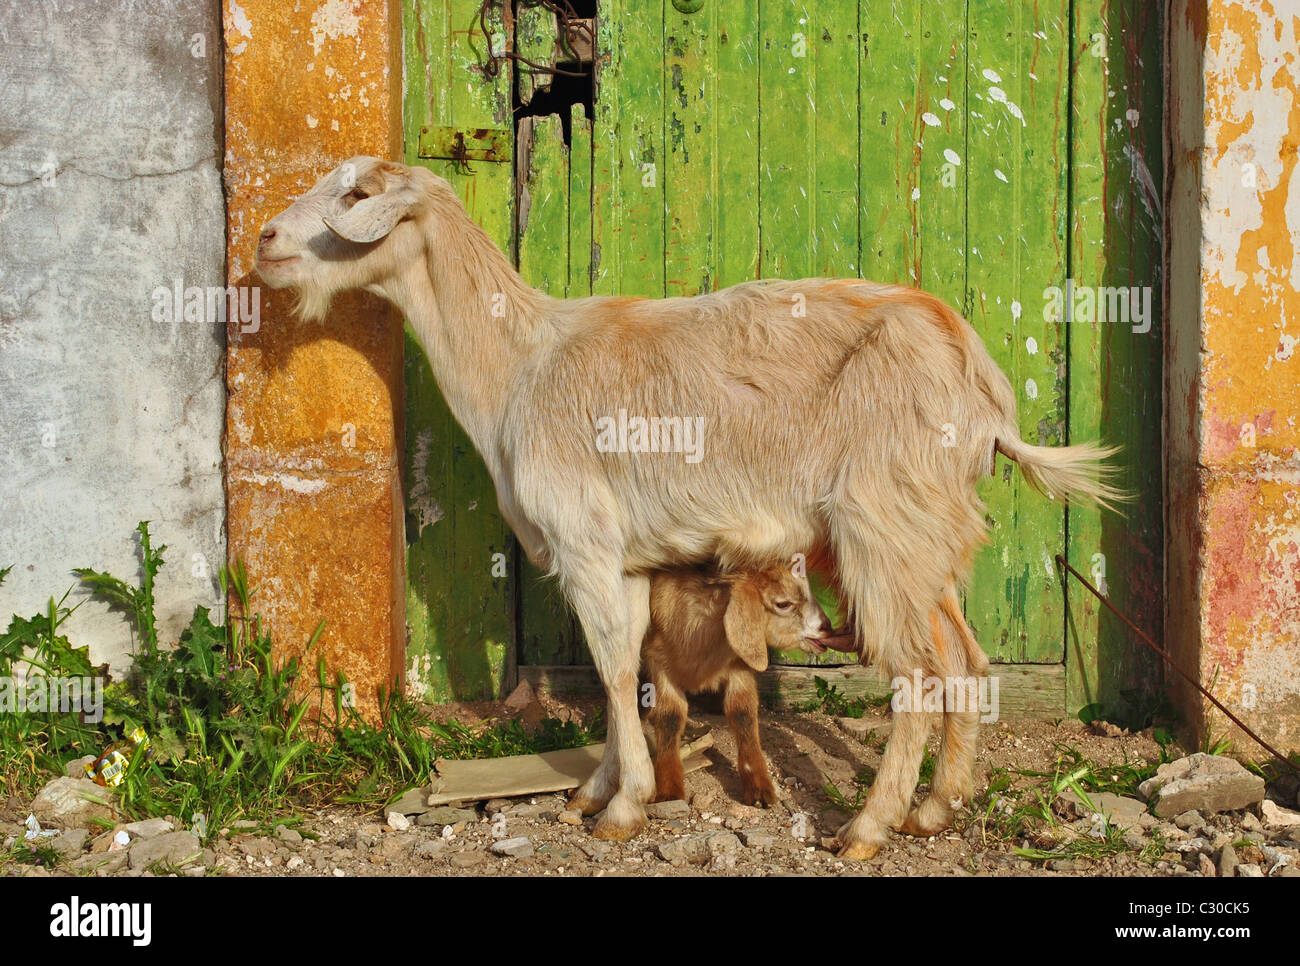 Young goat suckling mother's milk in Immouzzer, Morocco - Stock Image